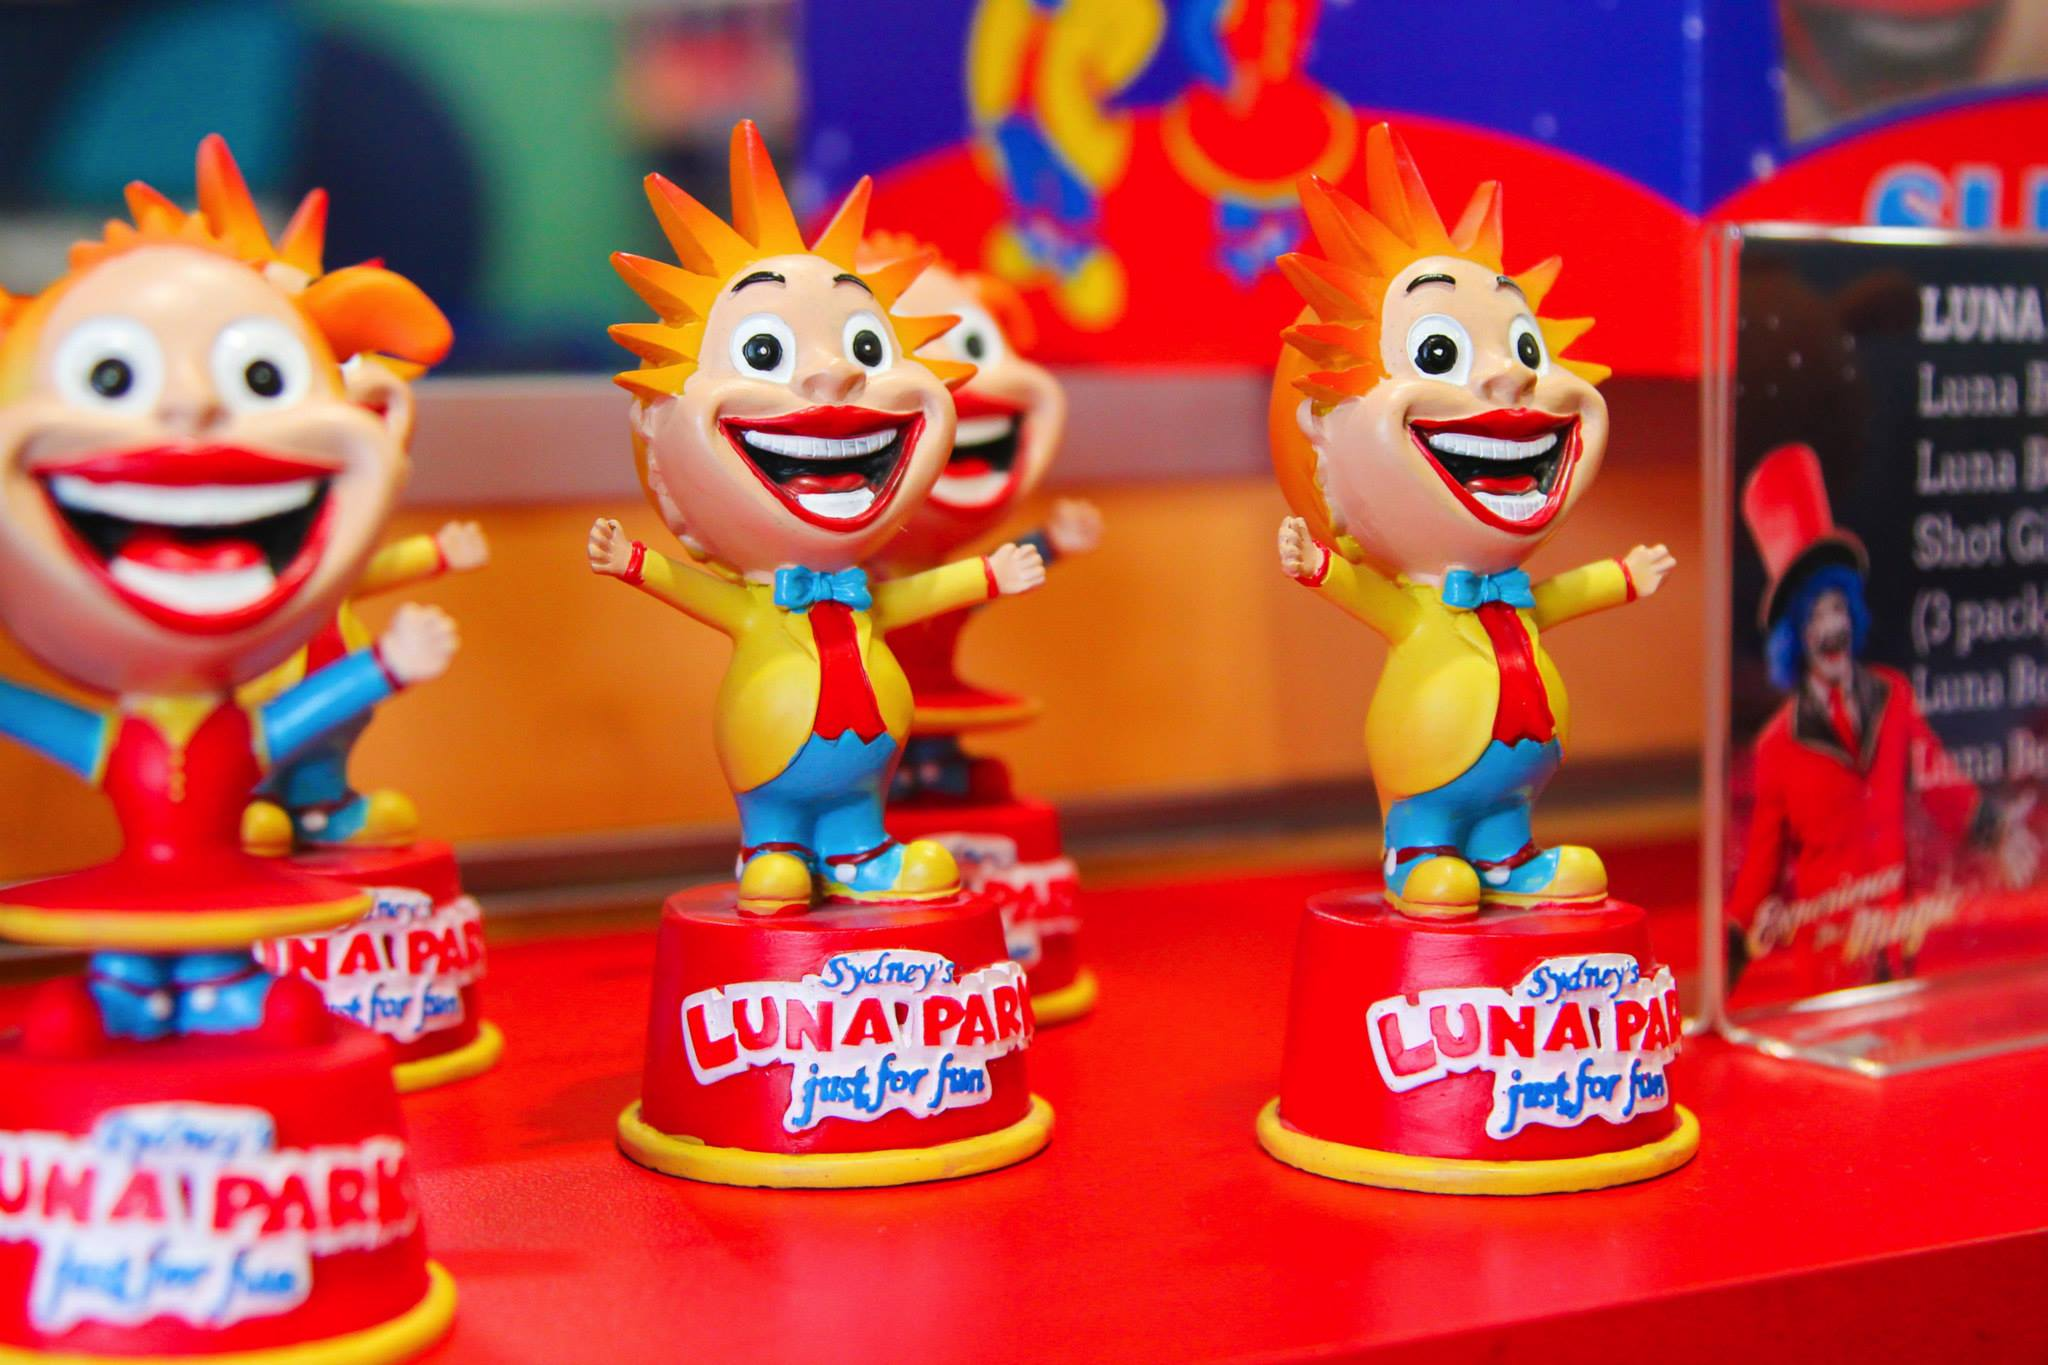 (FREE-ish) Things To Do In Sydney, Australia: Spend an afternoon in Luna Park! (10)